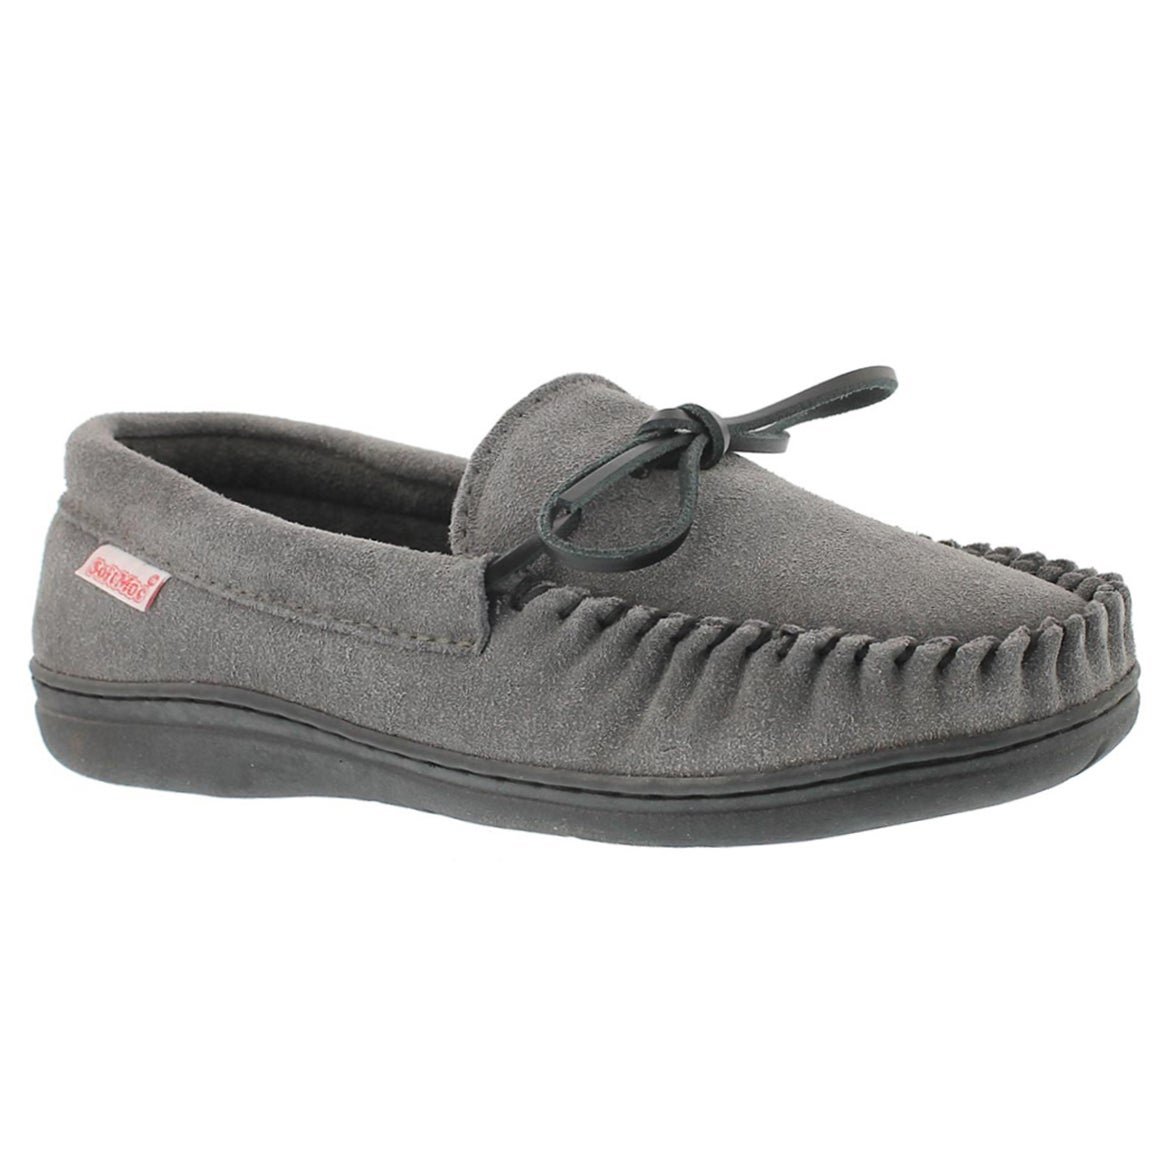 Men's DUSK grey suede moccasins